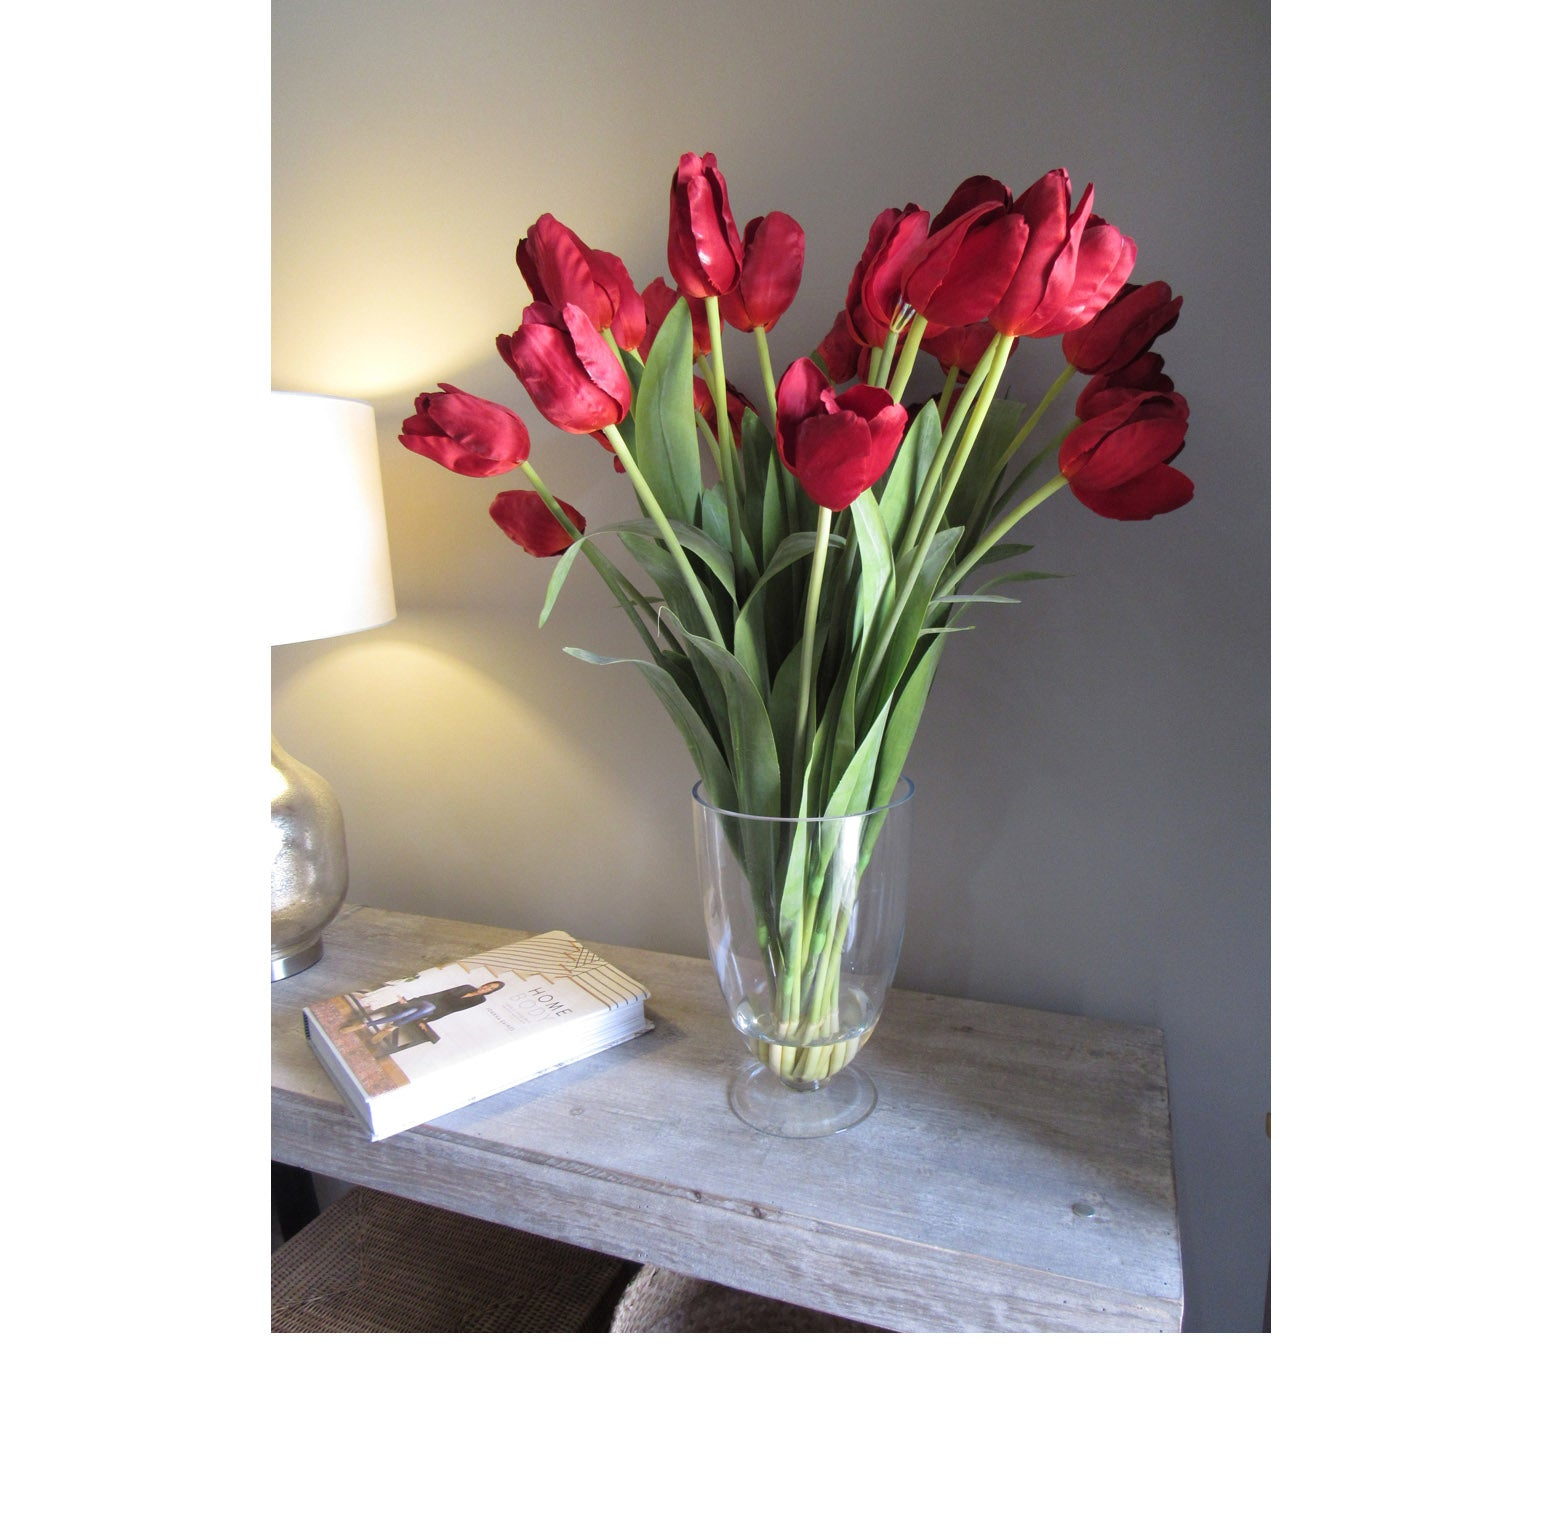 Tulips for Your Home